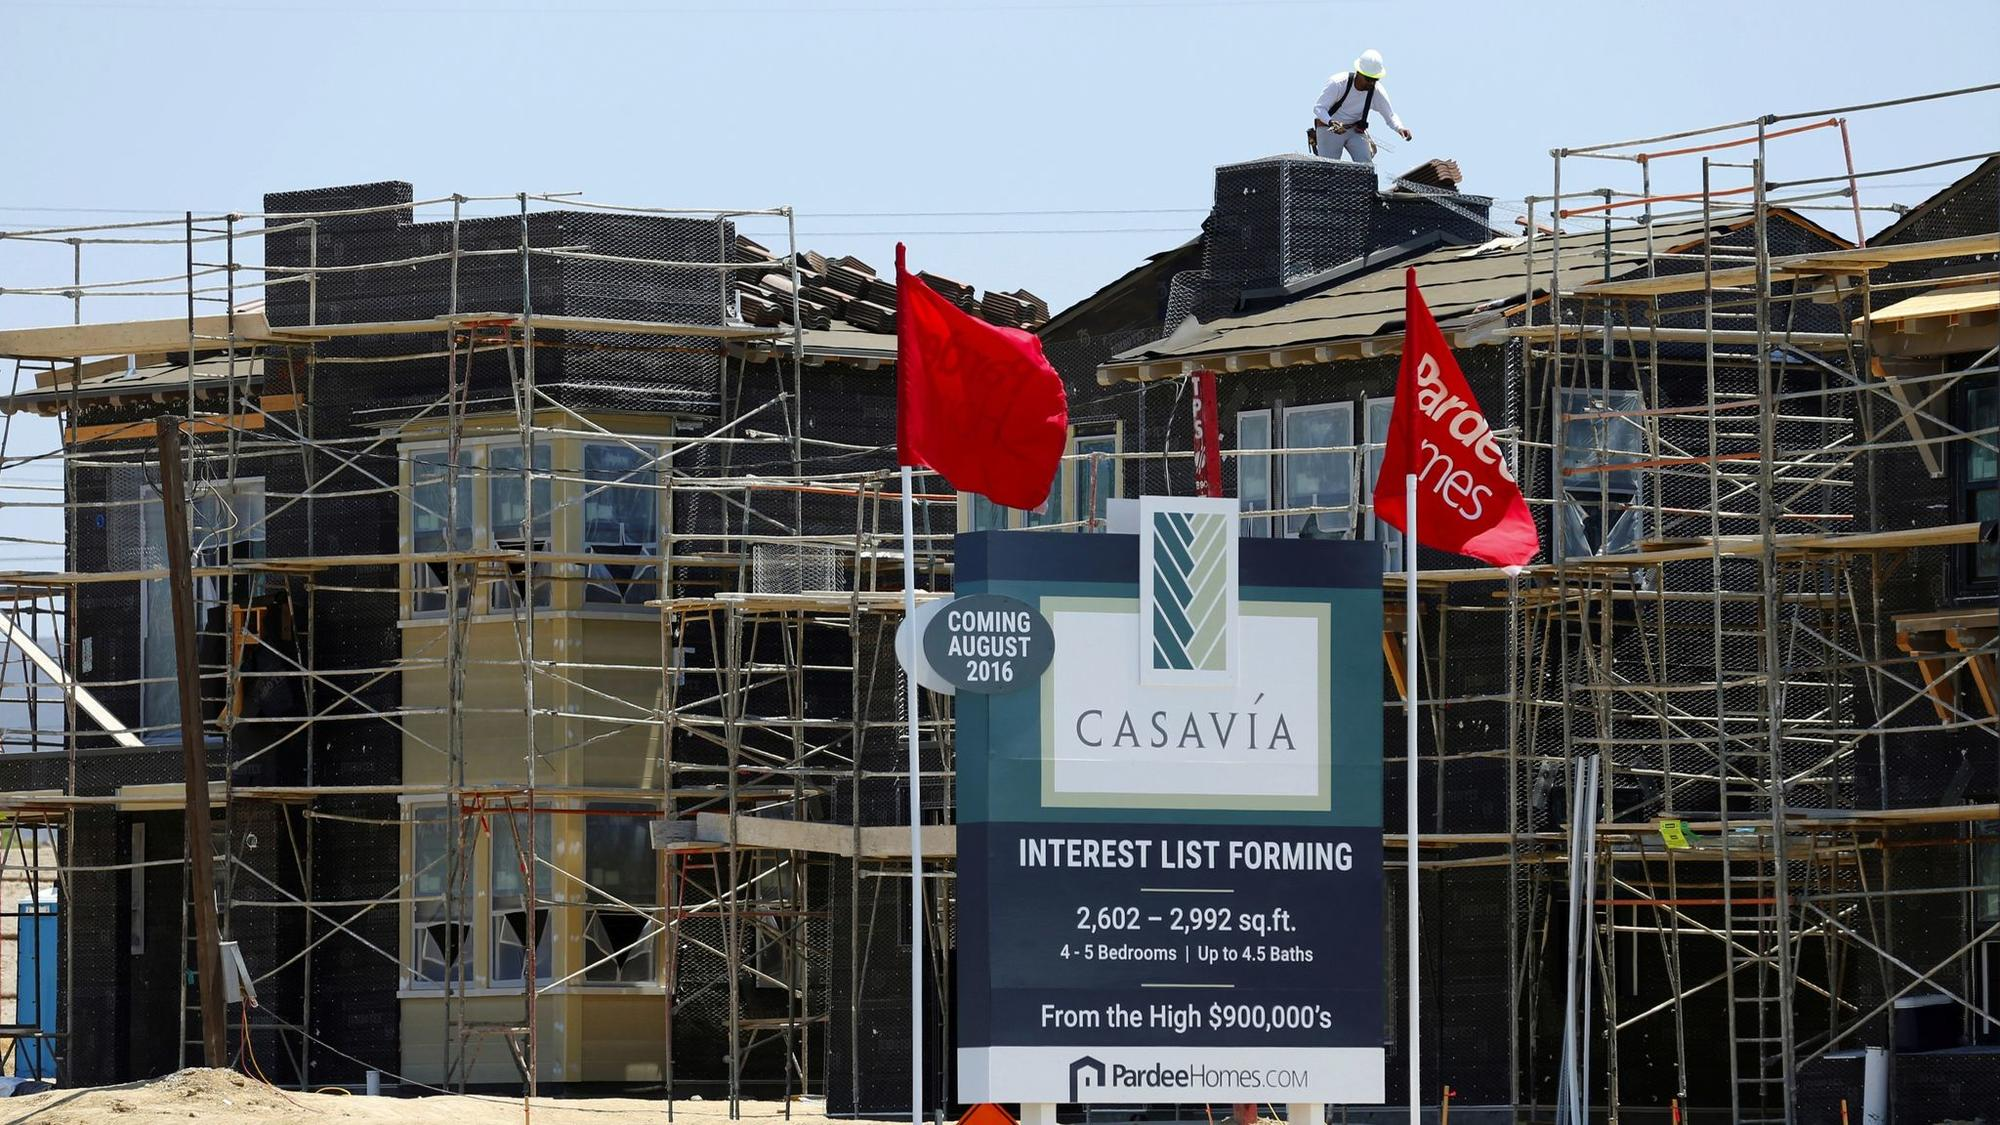 San Diego housing is expensive but still affordable to certain buyers because of rising wages.Construction of single family homes by Pardee Homes is seen in San Diego, California